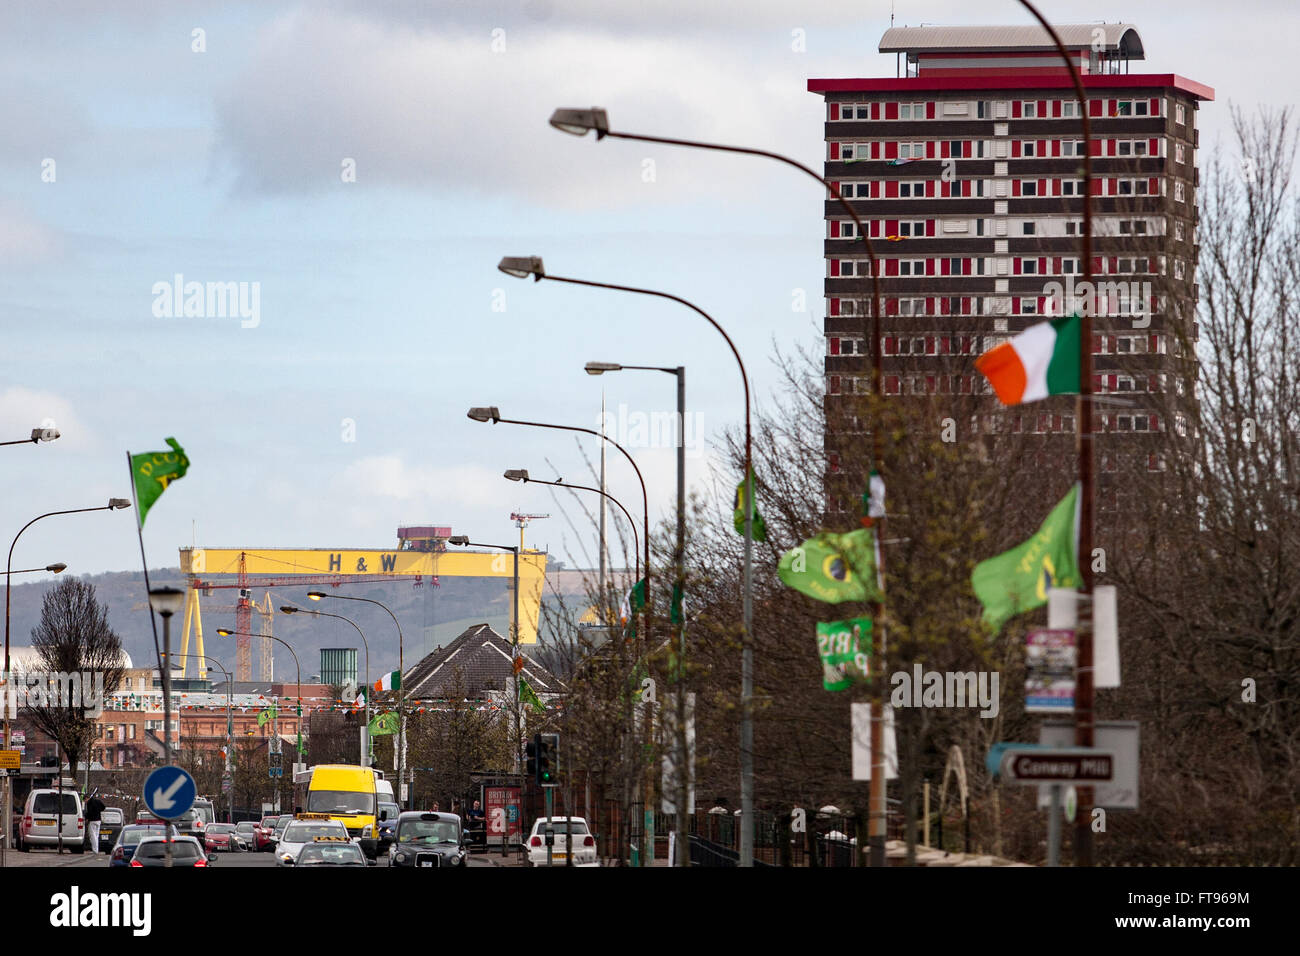 West Belfast, Ireland. 25th March, 2016. A view of the Harland and Wolfe Crane Samson in East Belfast with Divis - Stock Image